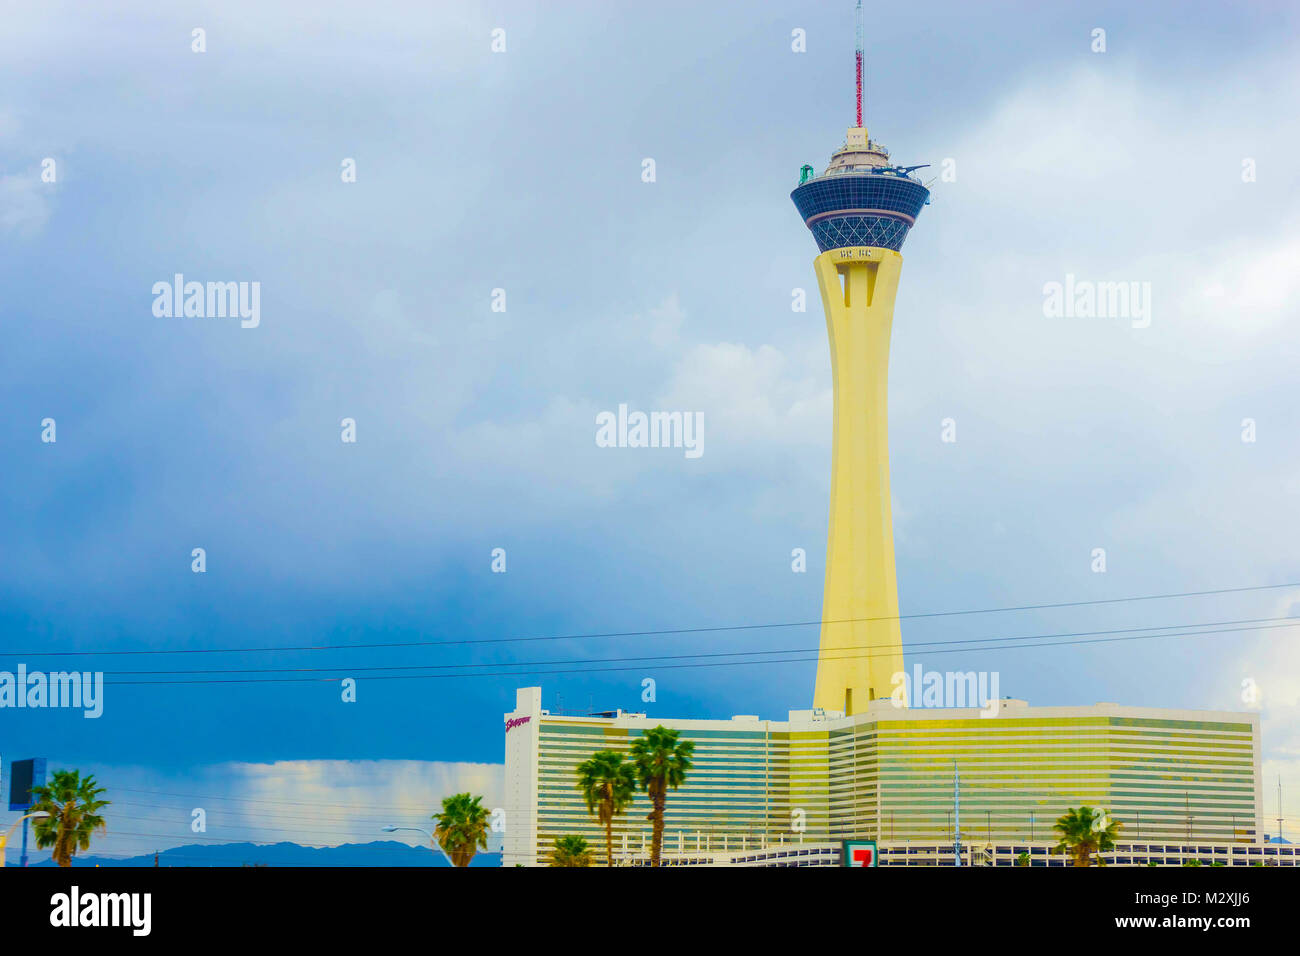 Las Vegas, United States of America - May 07, 2016: Stratosphere Hotel and Casino on the Las Vegas Strip, - Stock Image